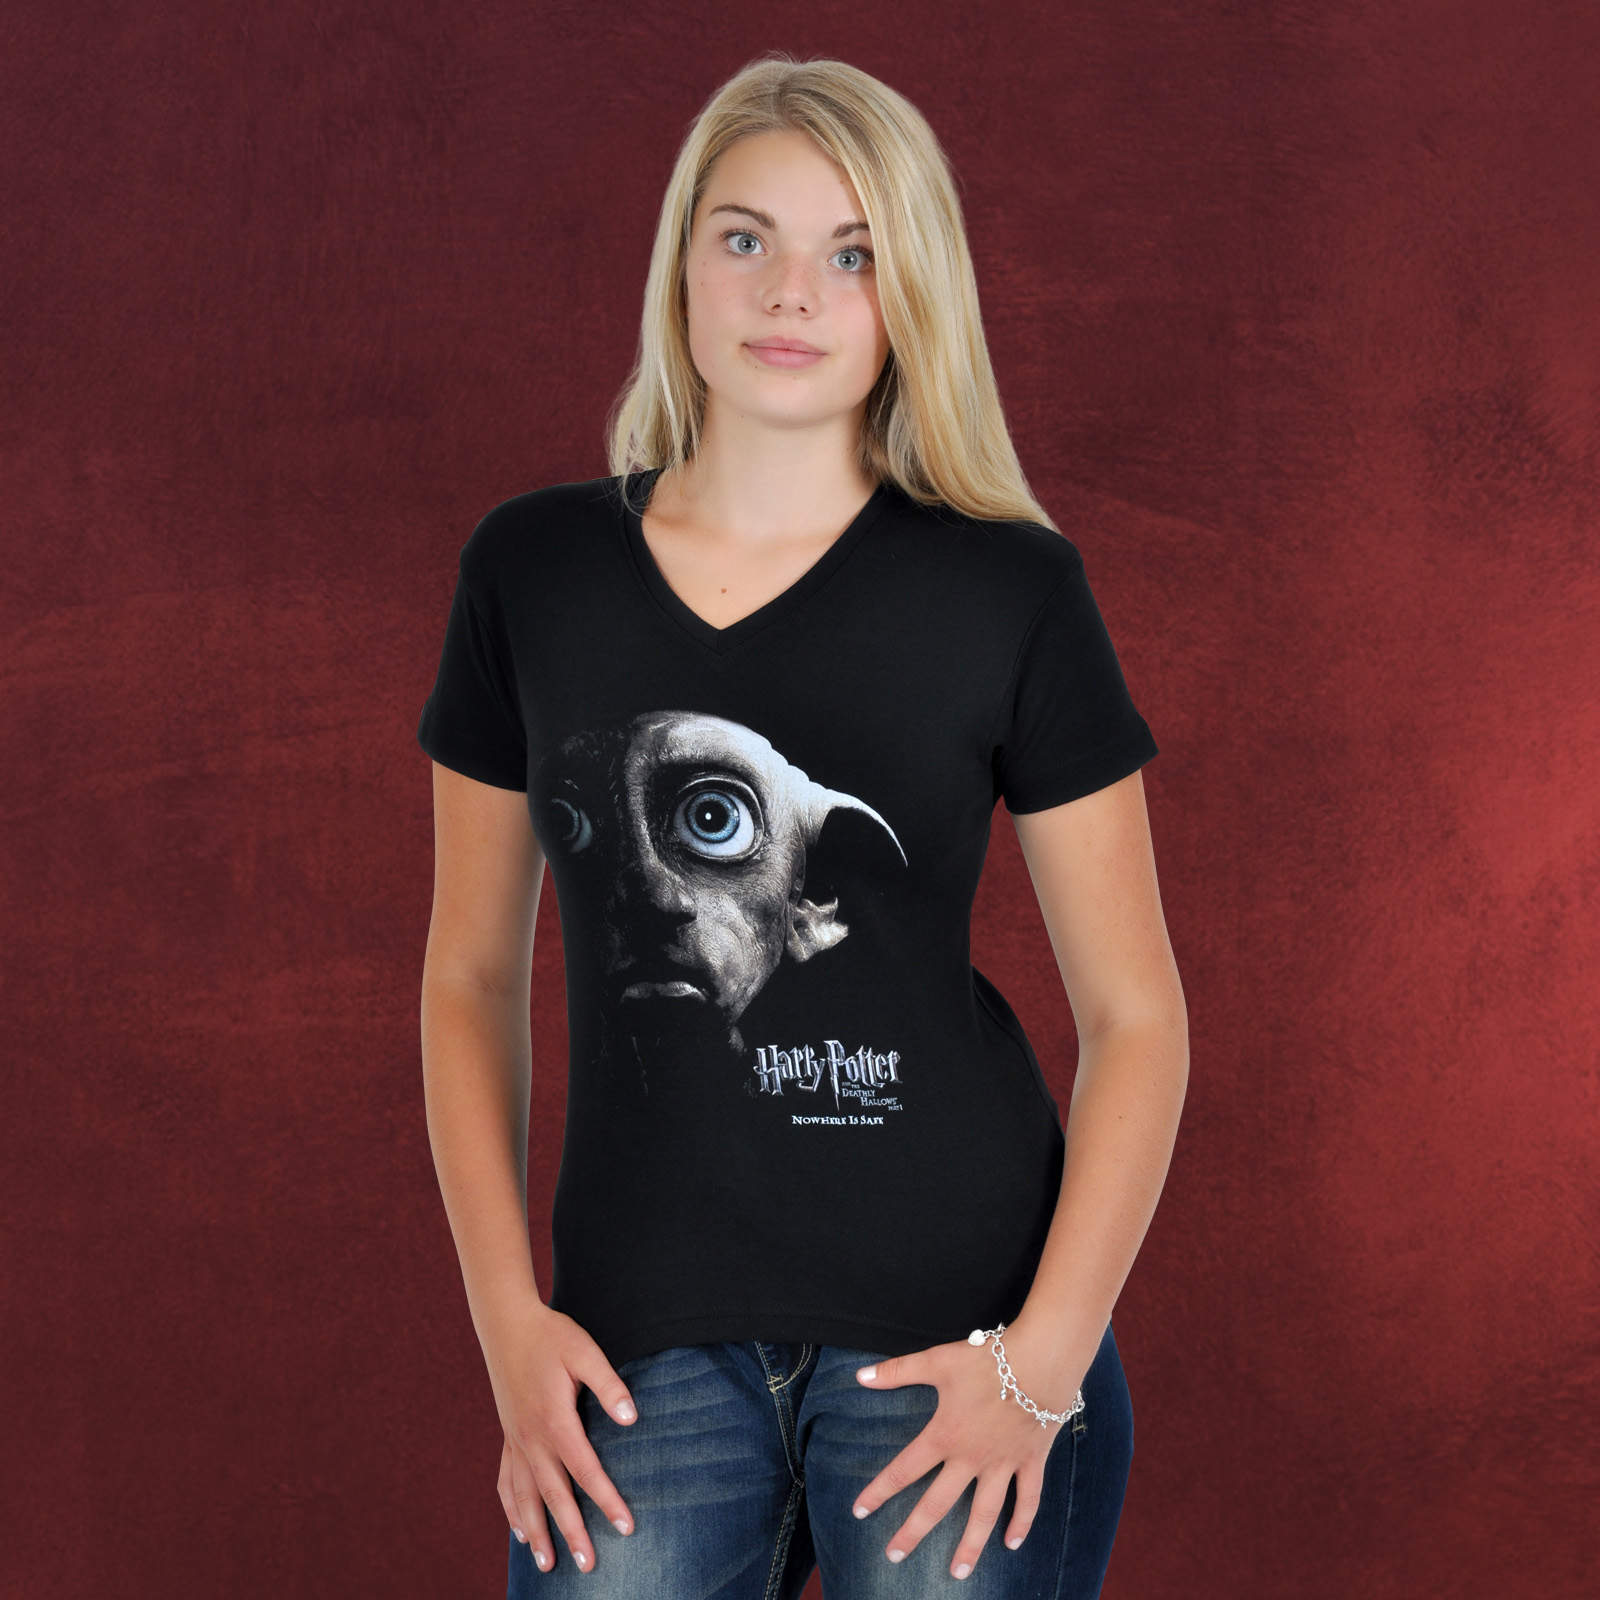 harry potter dobby hauself girlie shirt zum finalen kinofilm nowhere is safe ebay. Black Bedroom Furniture Sets. Home Design Ideas